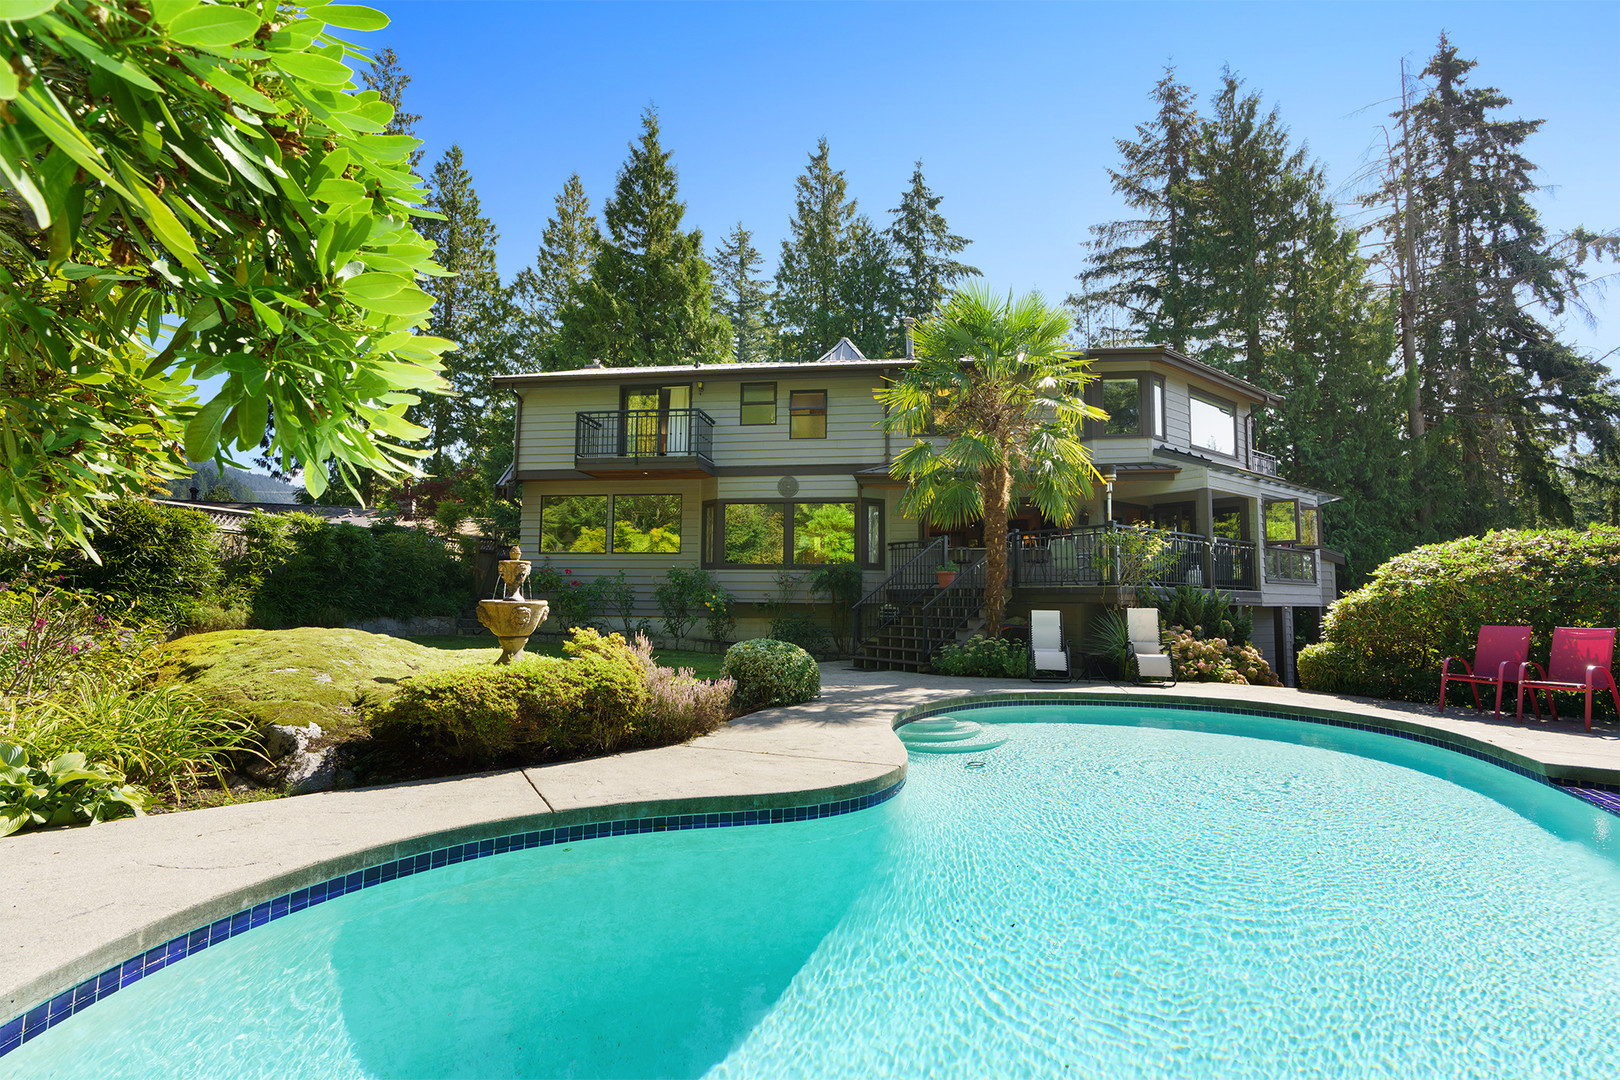 3767 Bayridge Ave. West Vancouver